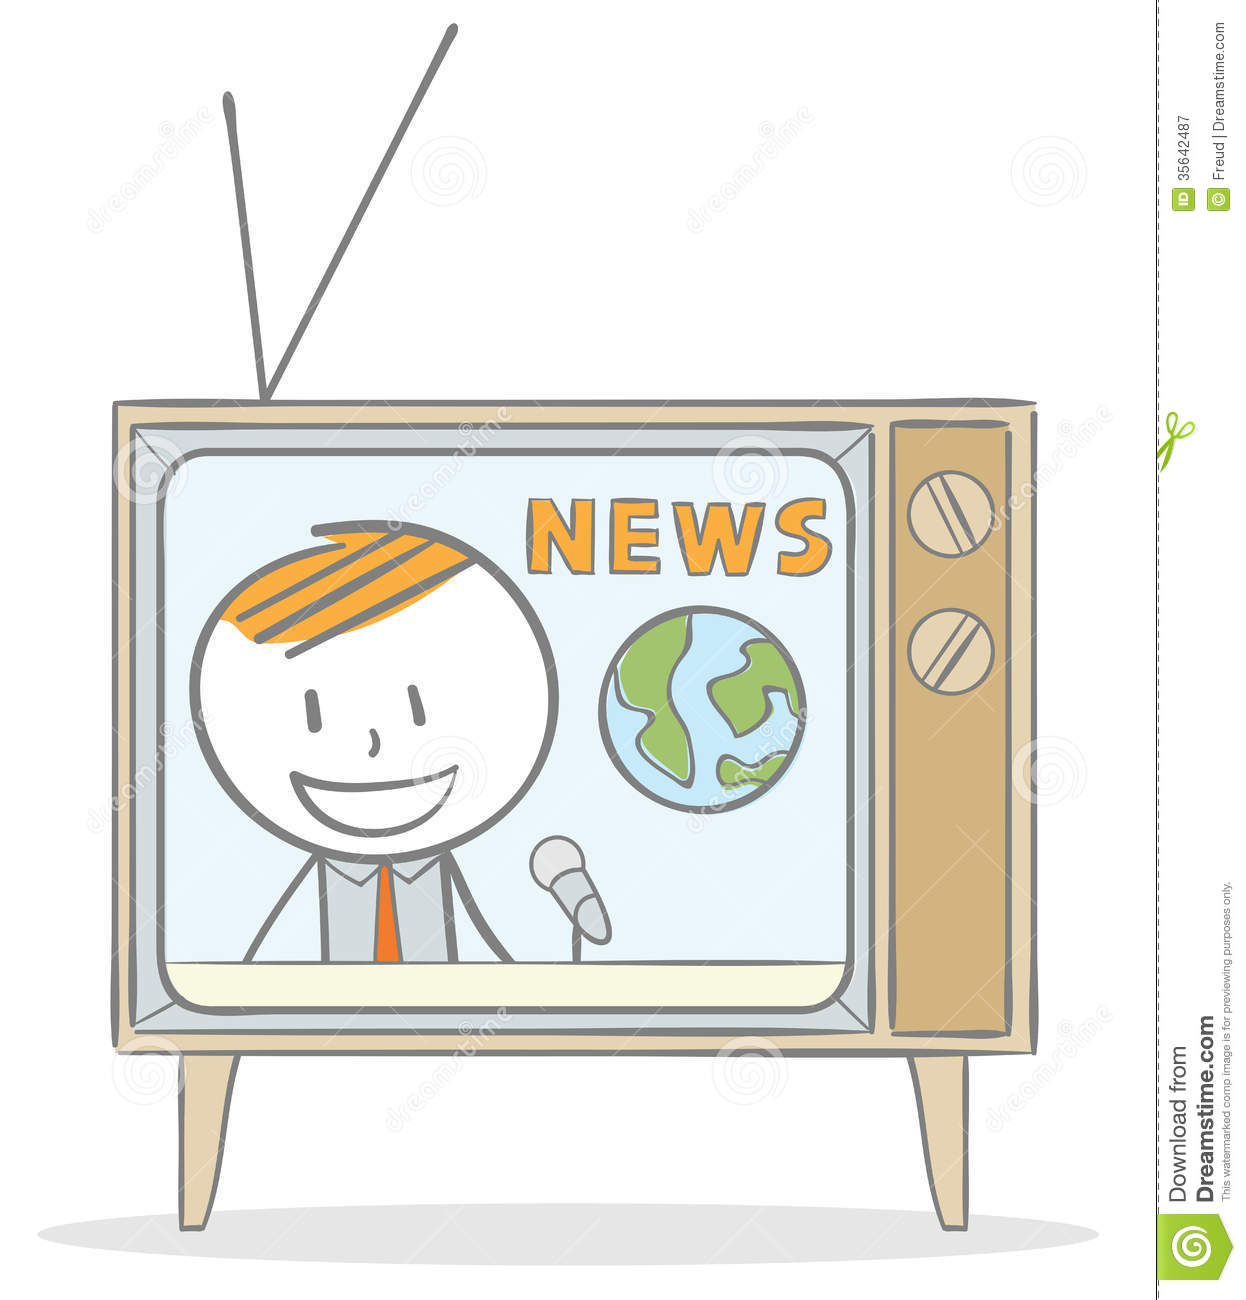 News Anchor Royalty Free Stock Photography - Image: 35642487